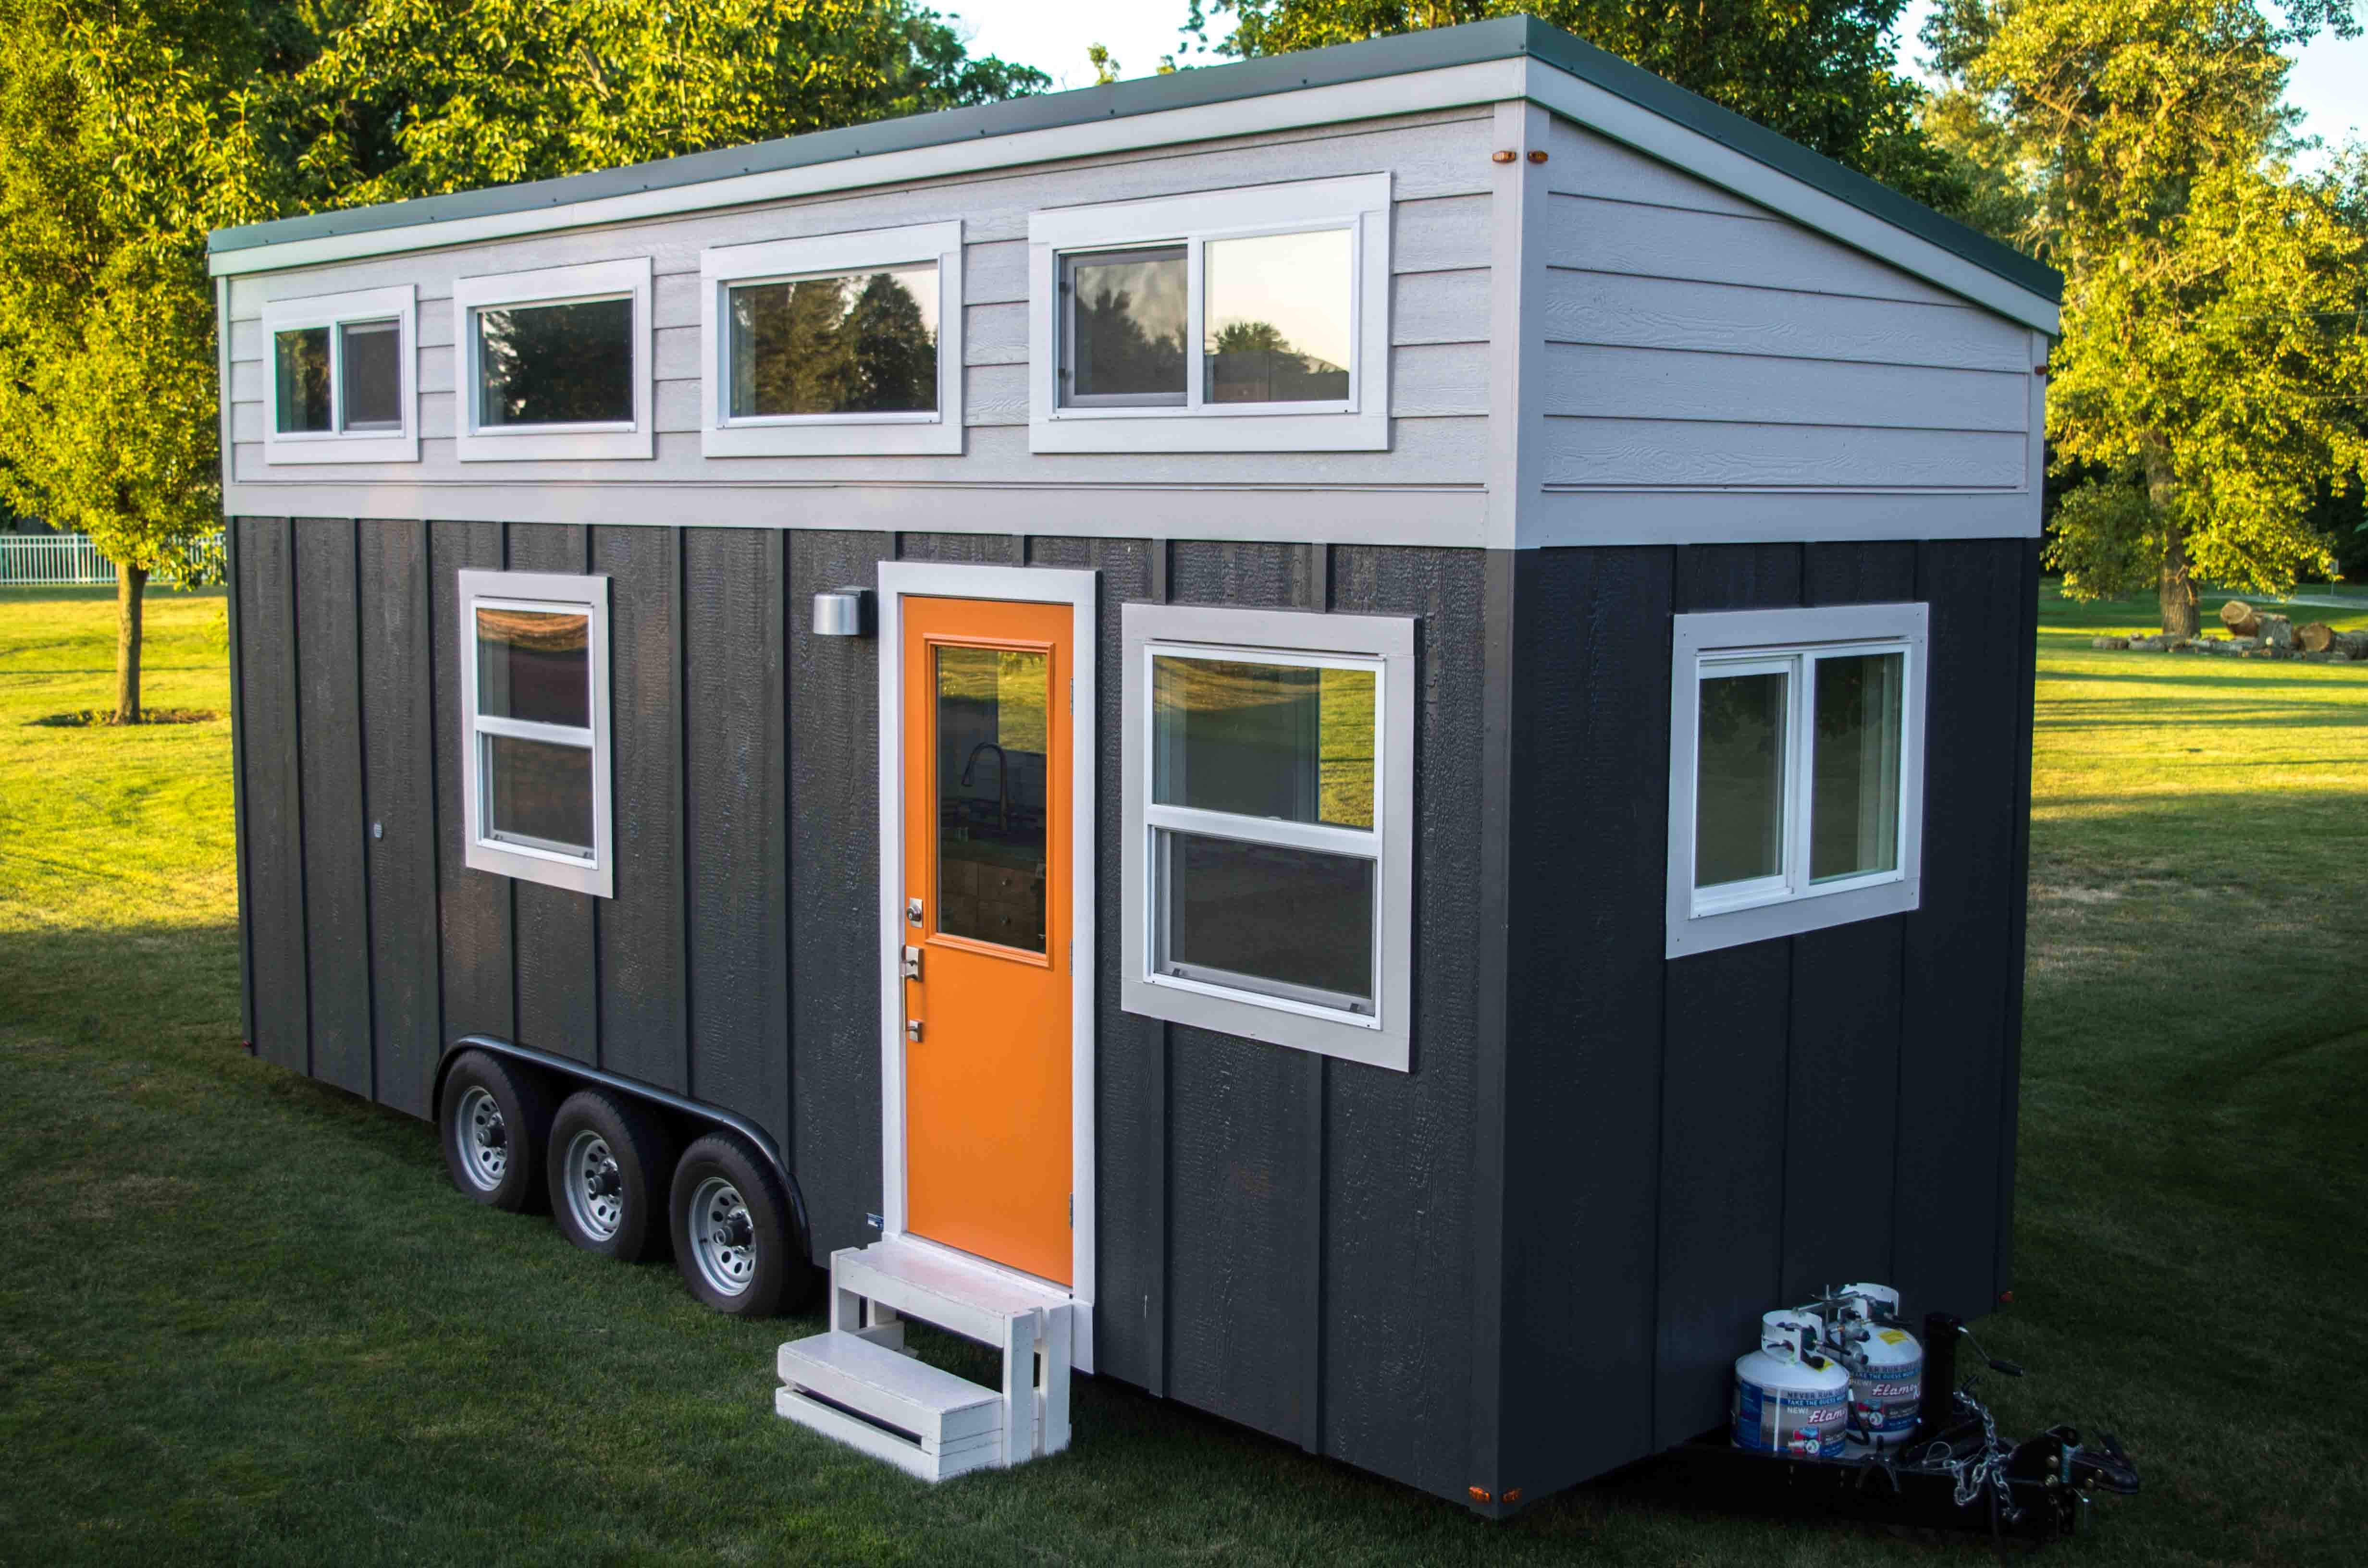 Small House Design: Seattle Tiny Homes Offers Complete Tiny House On Wheels Plans